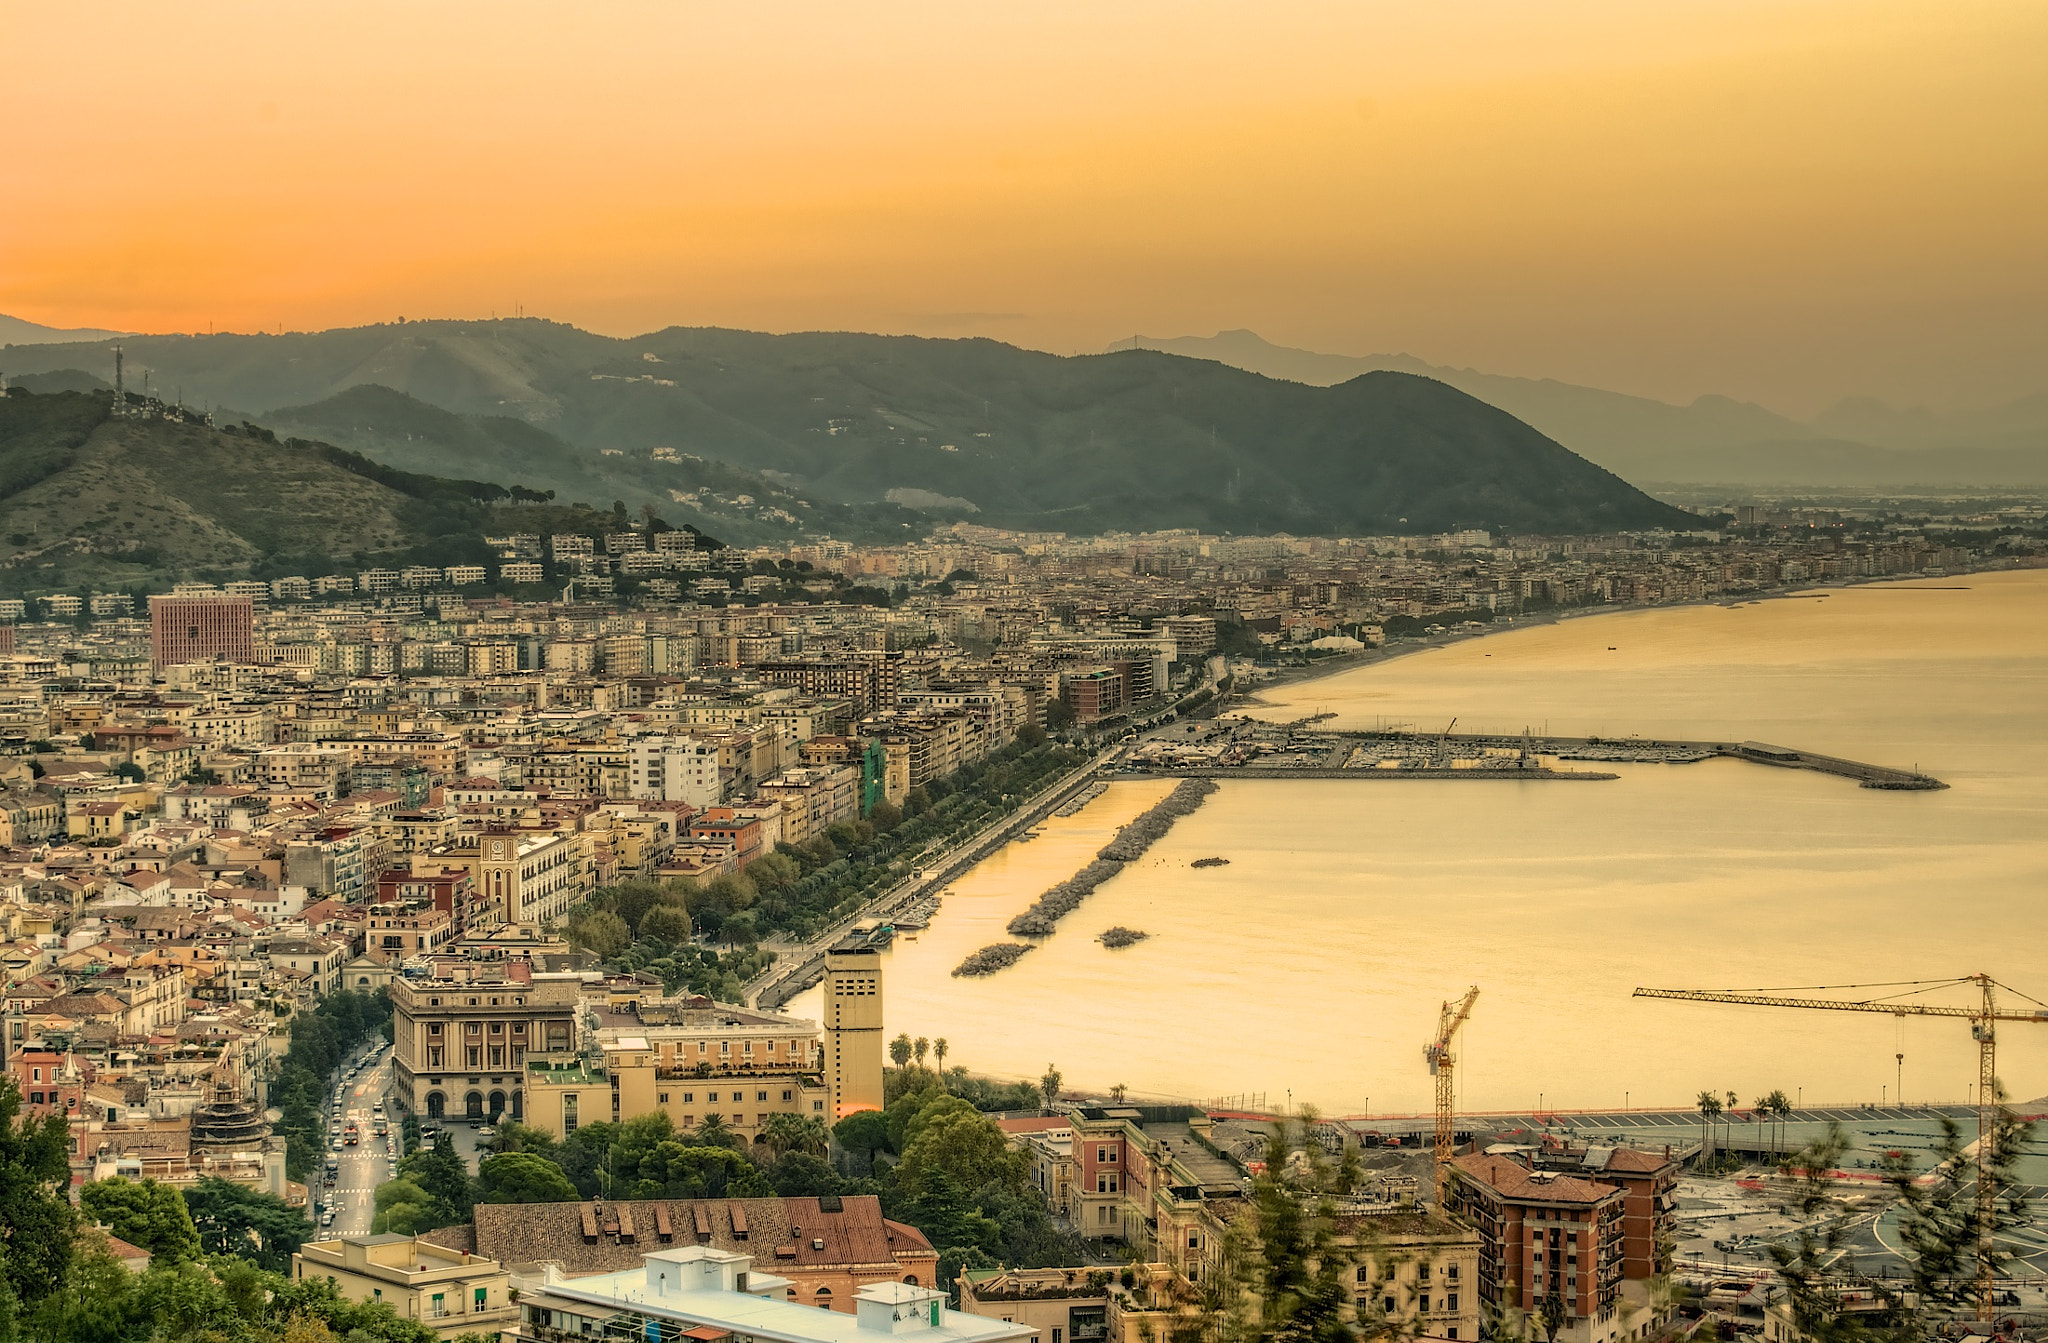 Photograph Salerno, southern Italy by Rosario Manzo on 500px